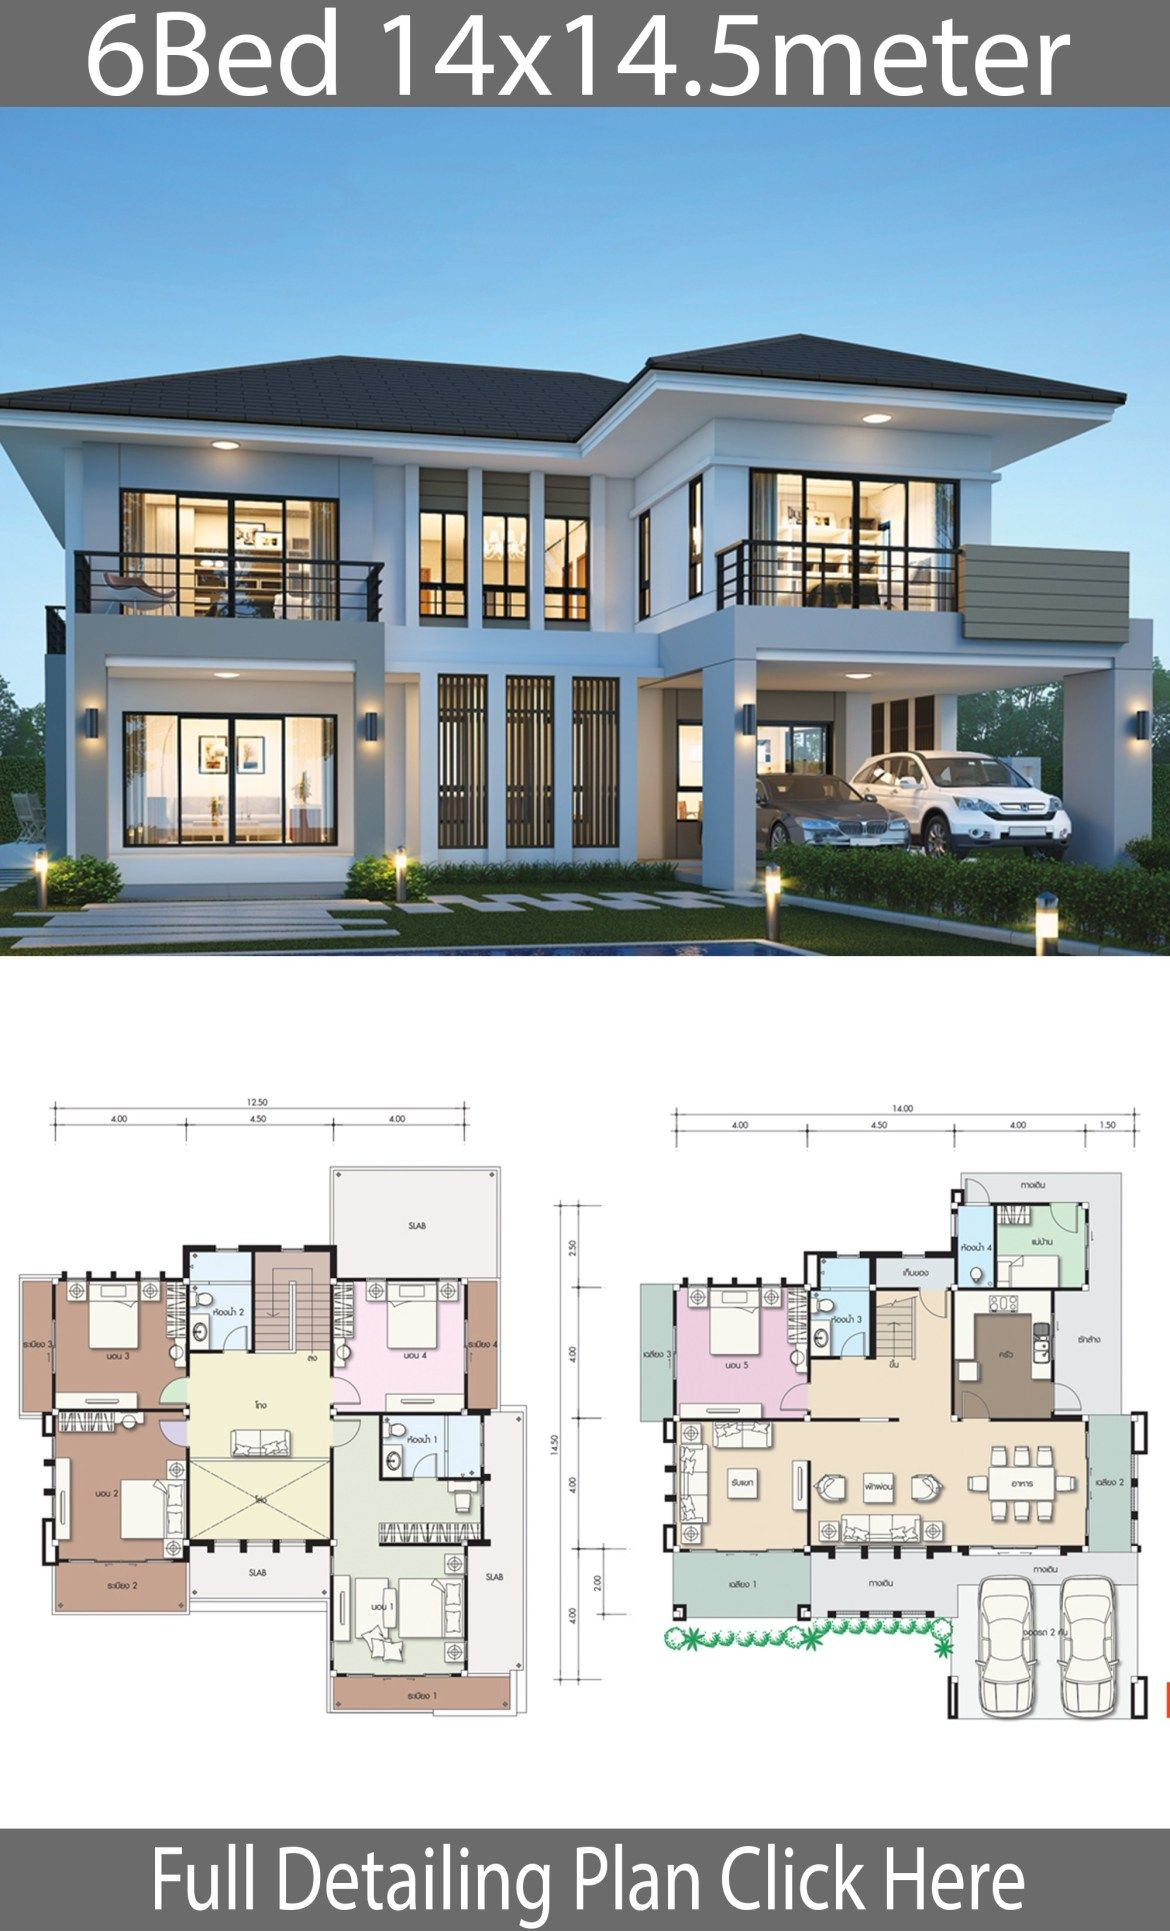 House Design Plan 14x14 5m With 6 Bedrooms Home Design With Plansearch Beautiful House Plans House Layout Plans Duplex House Design